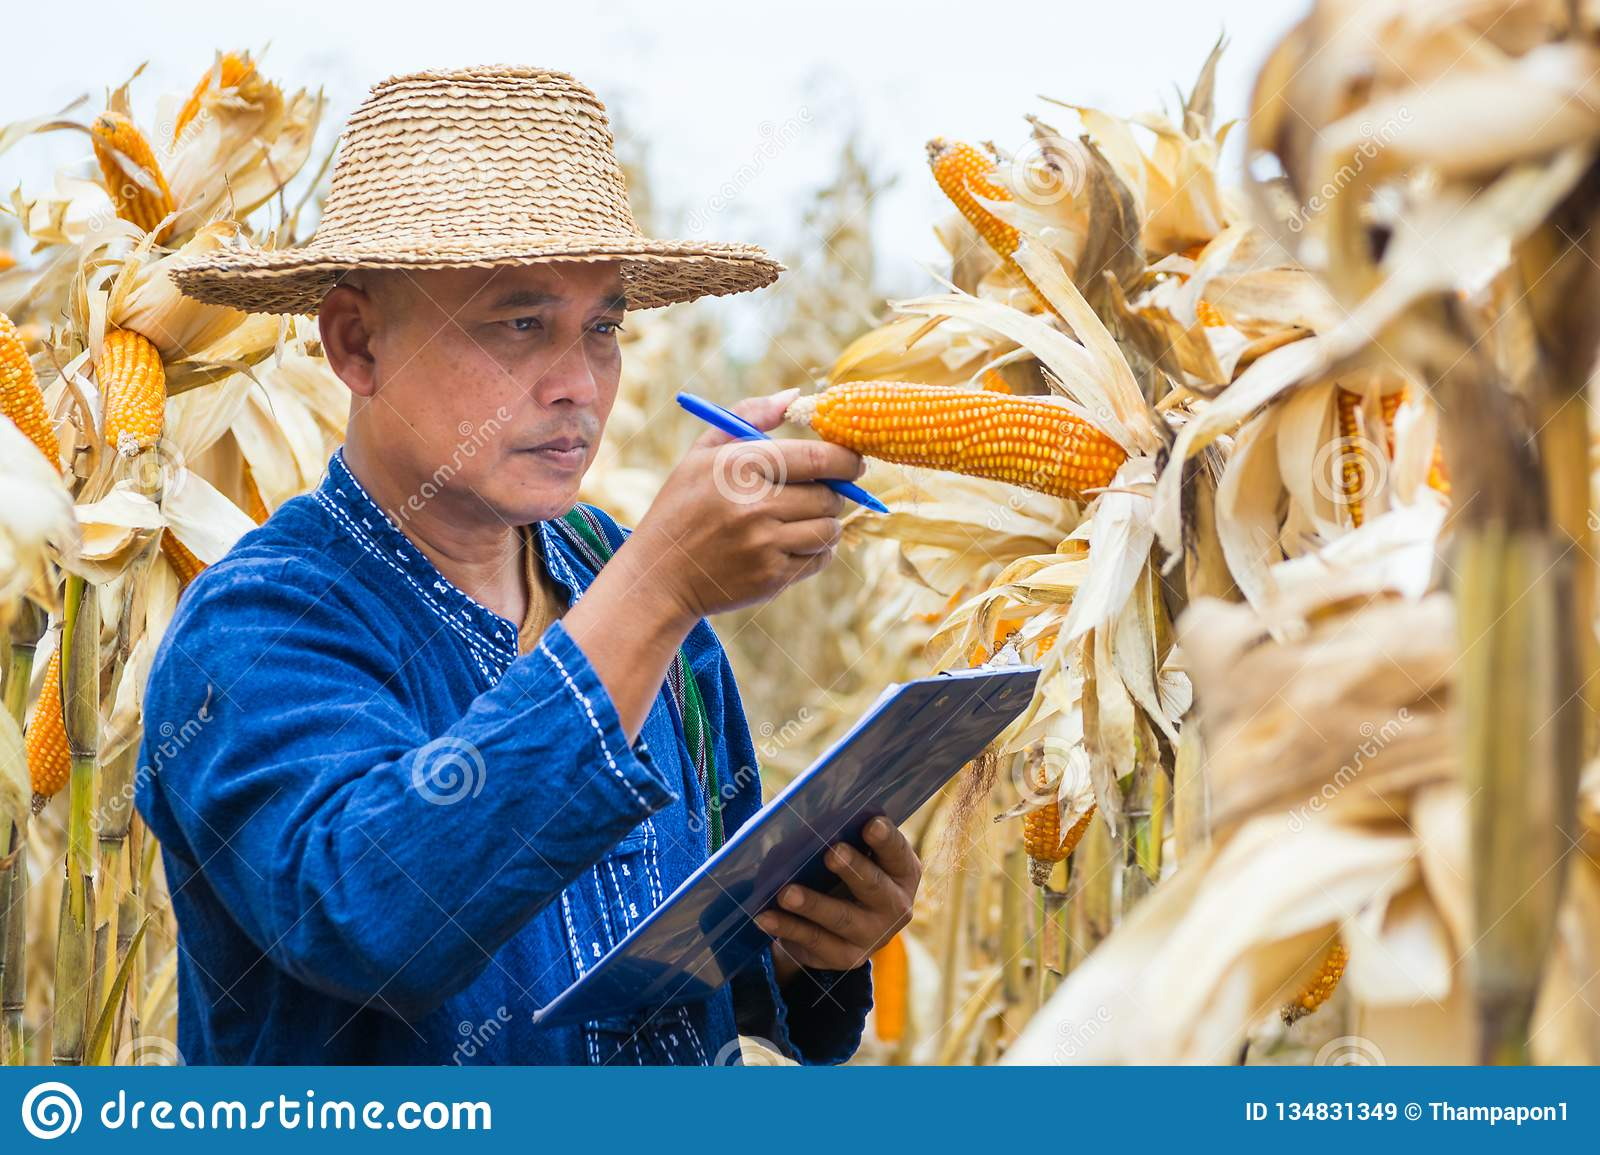 Farmer or Biologist inspect Check or Analyze and Research Raw Corn Cob